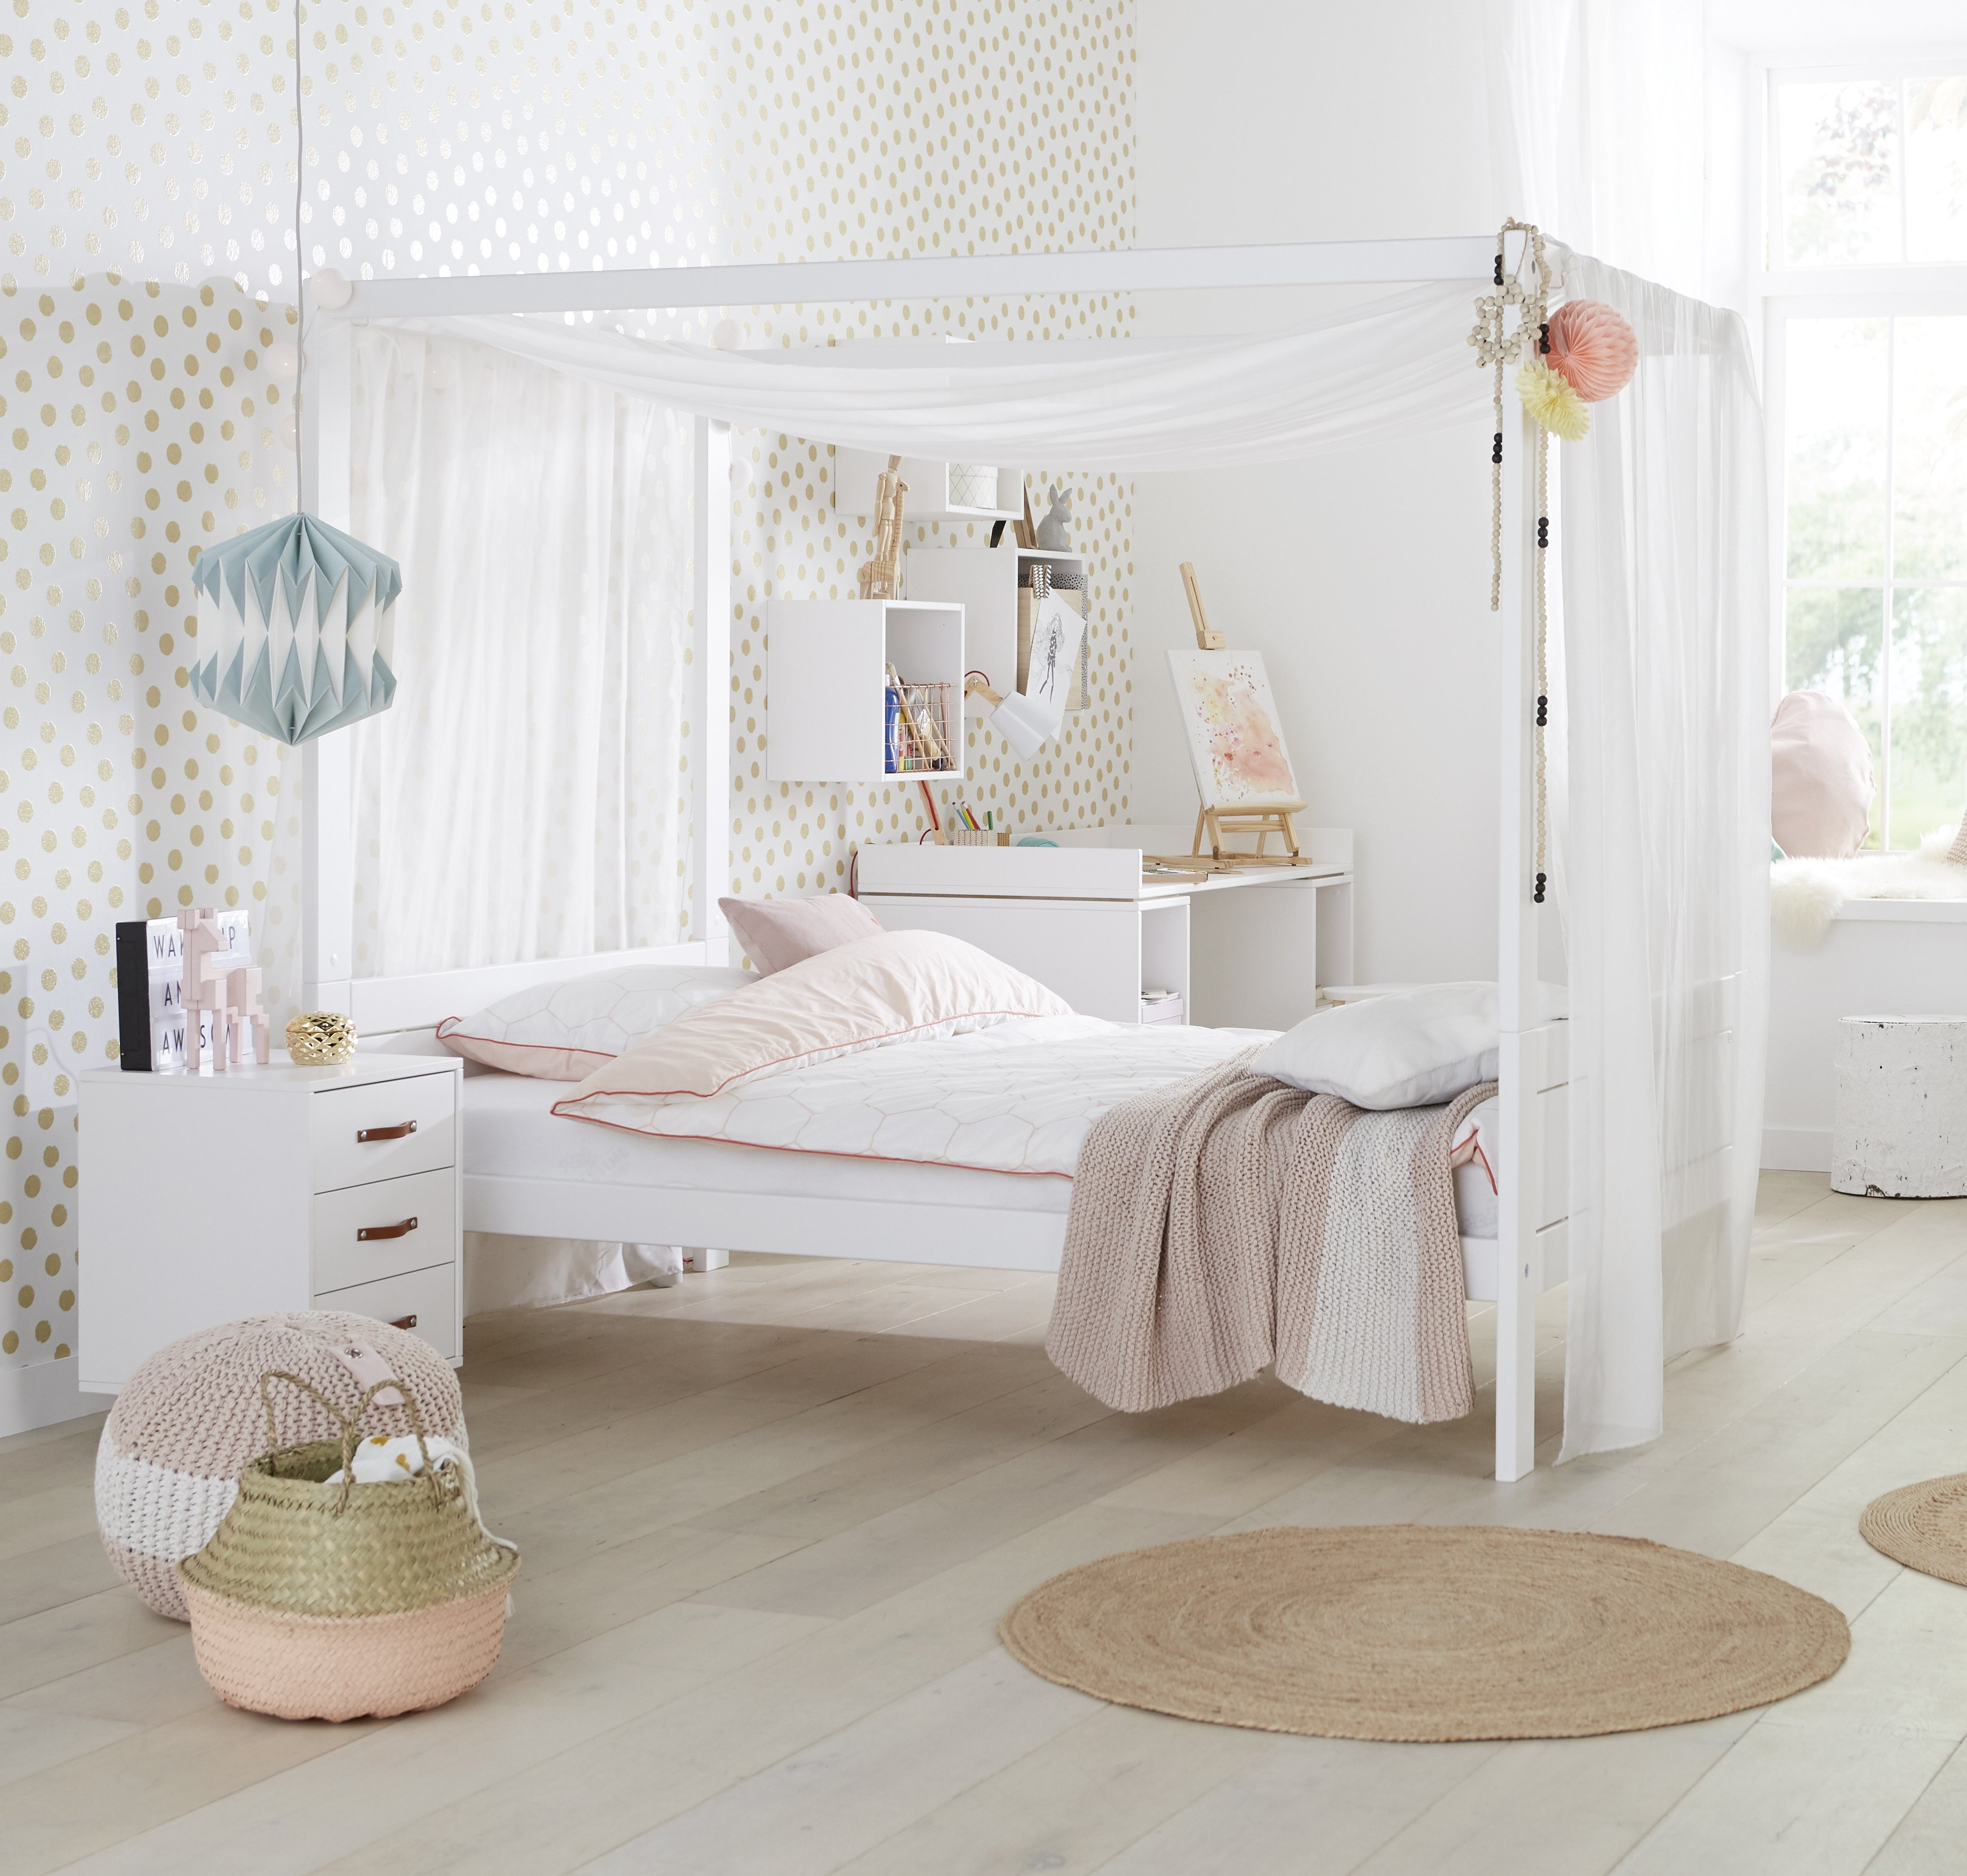 Four poster bed with canopy 3 4 white for children in s a for Rooms 4 kids